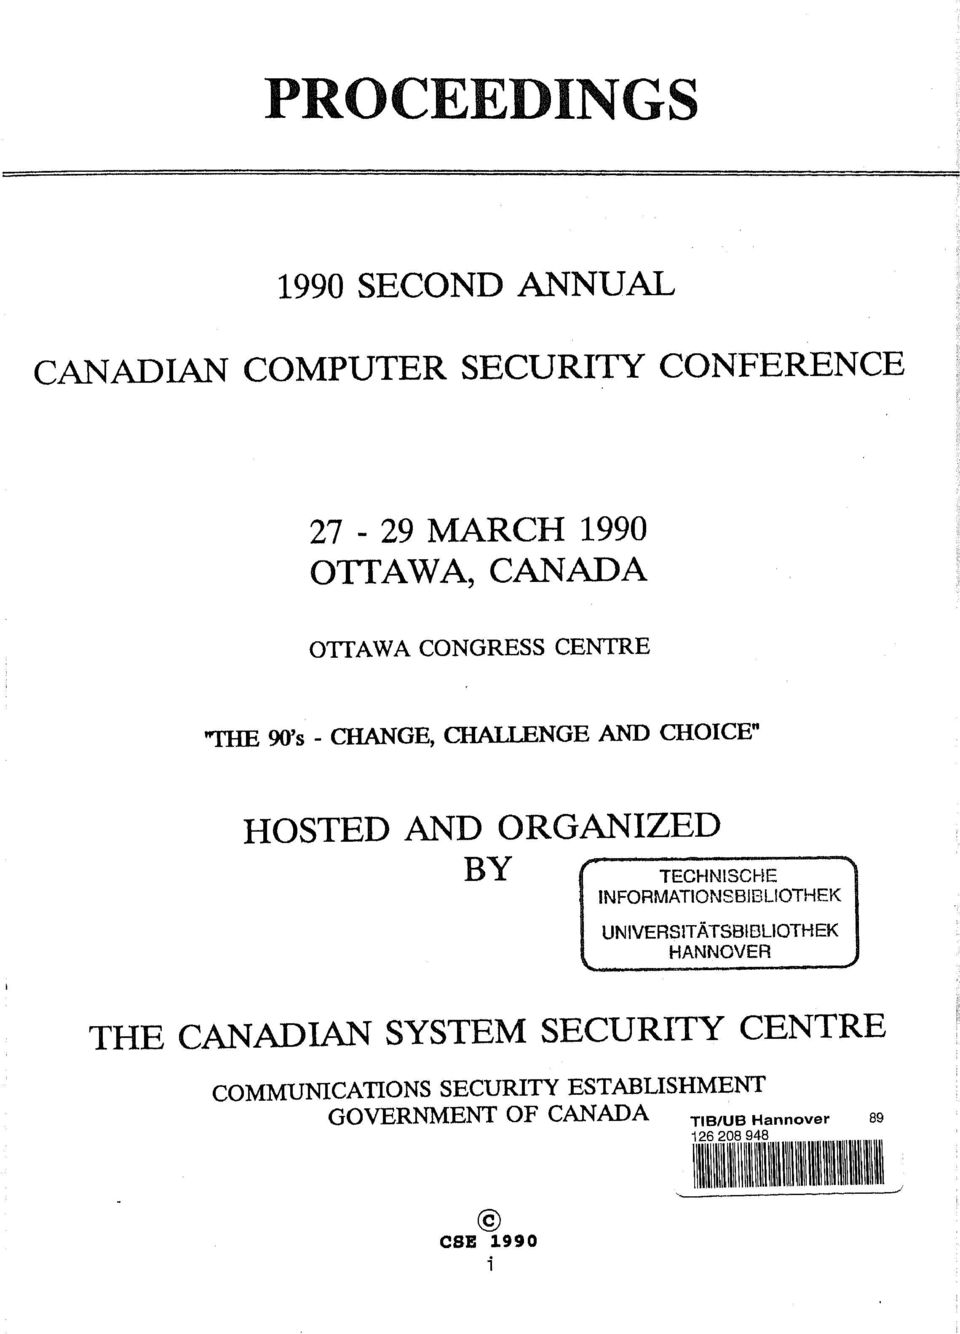 TECHN1SCHE INFORMATIONSB1BLIOTHEK UNIVERS1TÂTSBIDLIOTHEK HANNOVER THE CANADIAN SYSTEM SECURITY